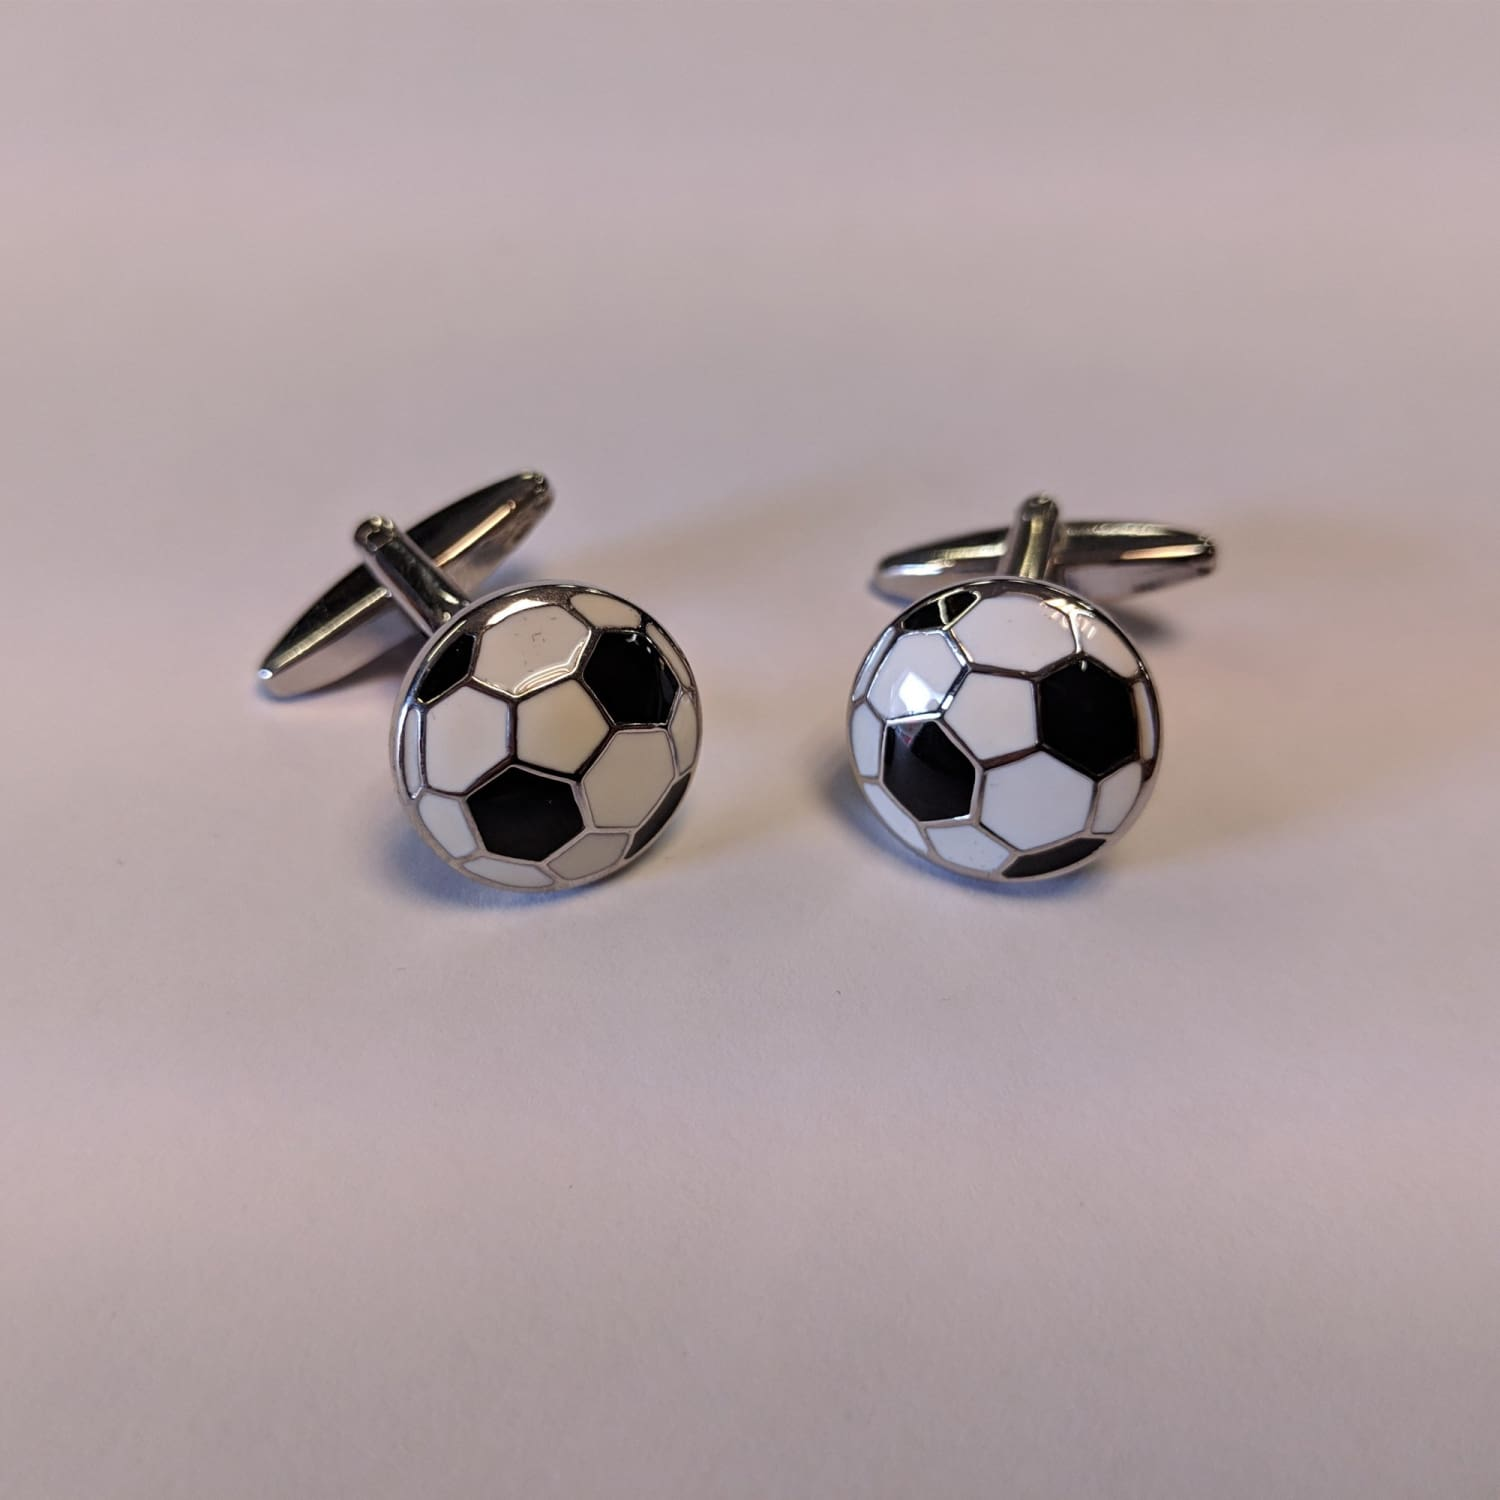 DAlterio Cufflinks - Football 1